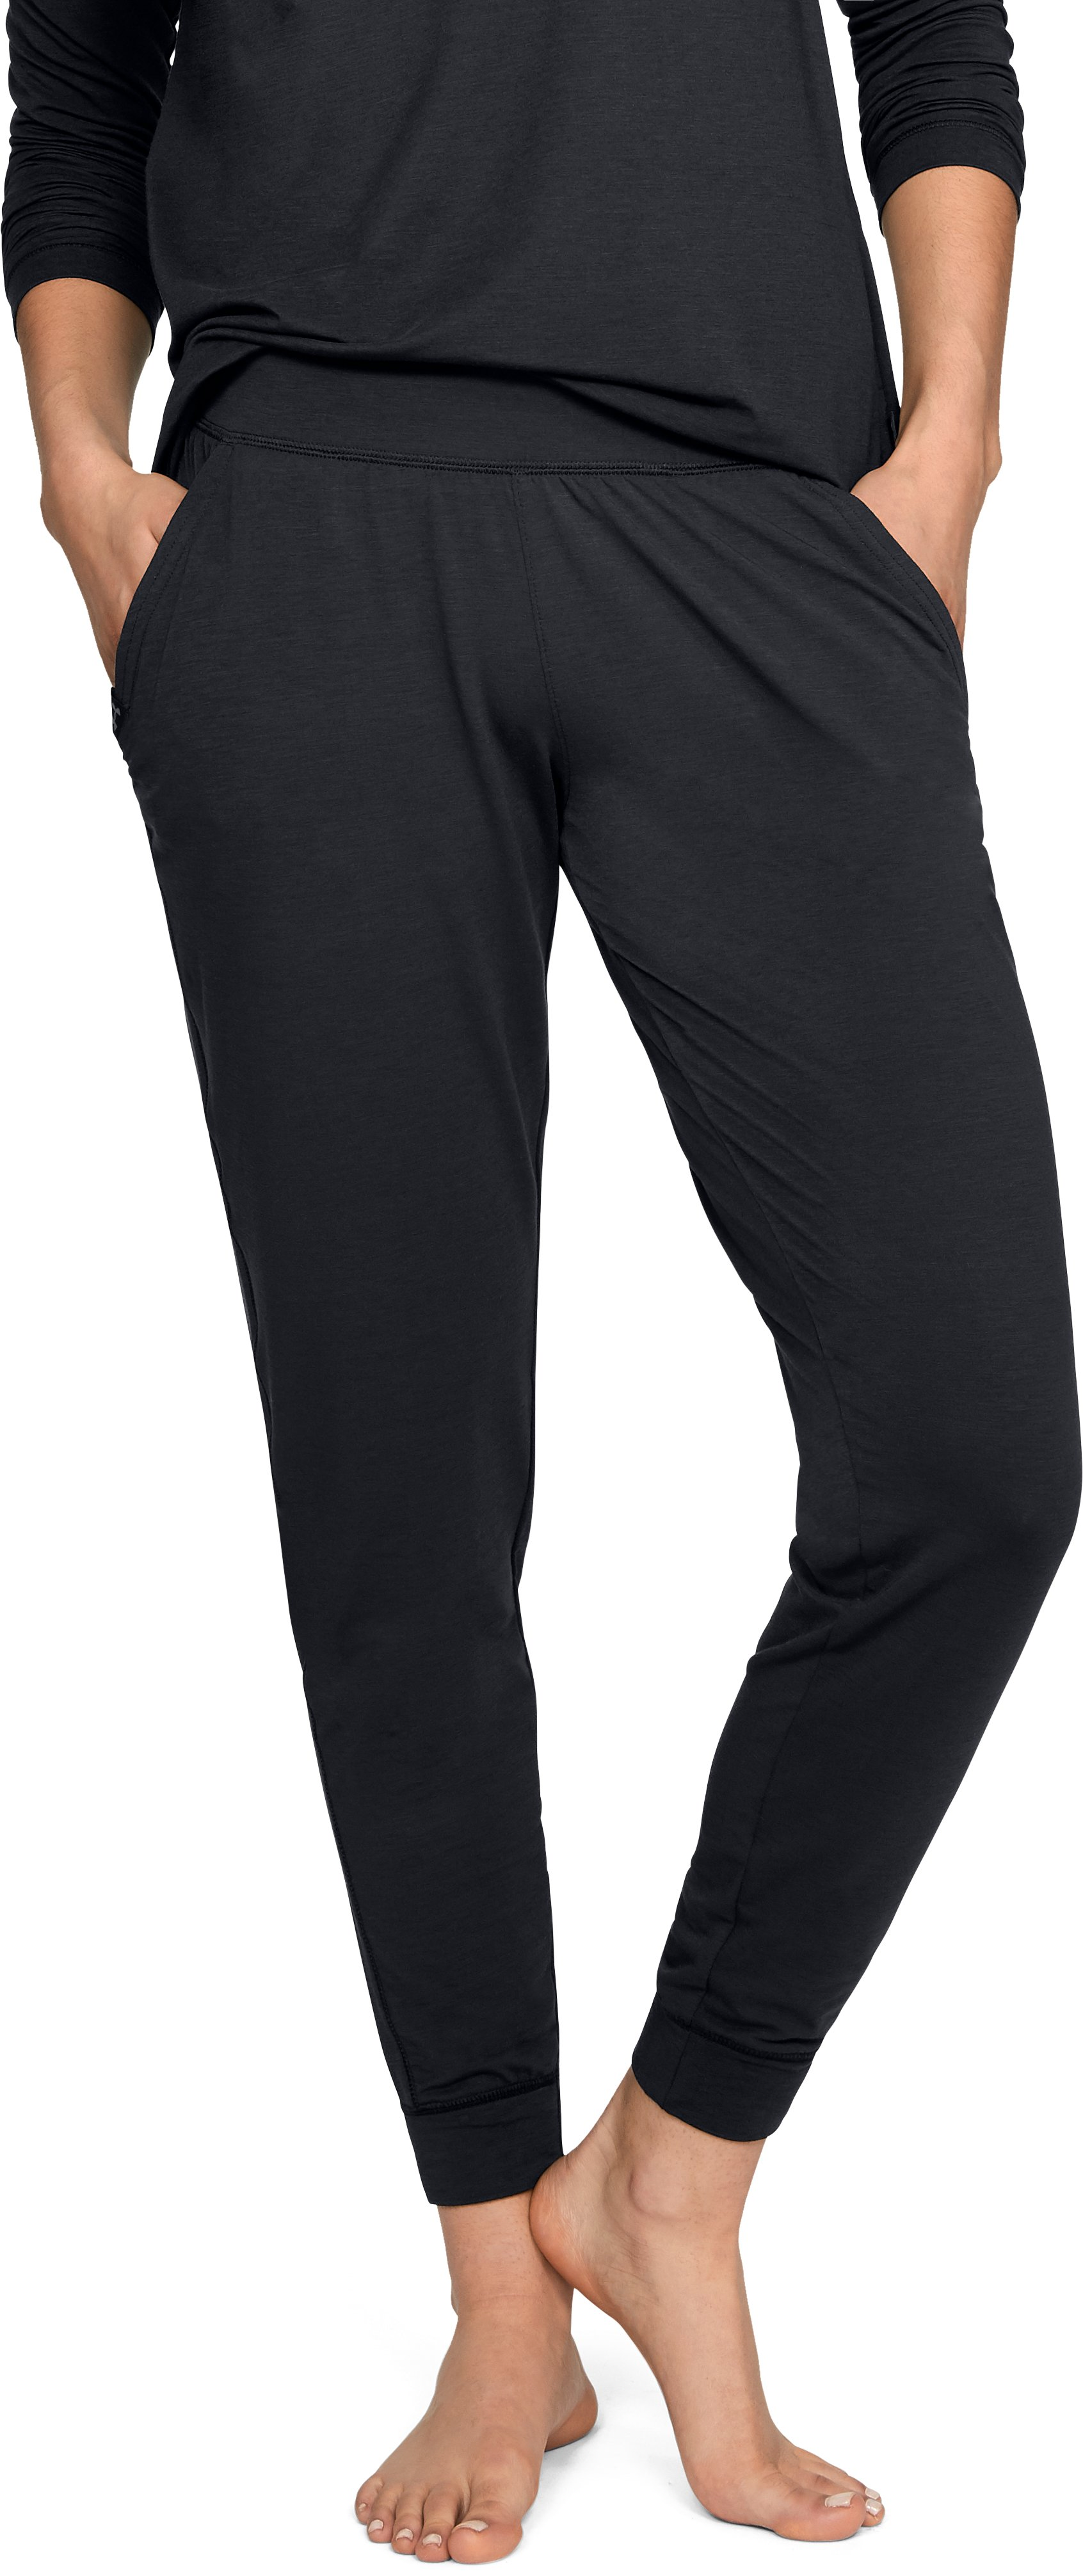 Women's Athlete Recovery Sleepwear Joggers, Black